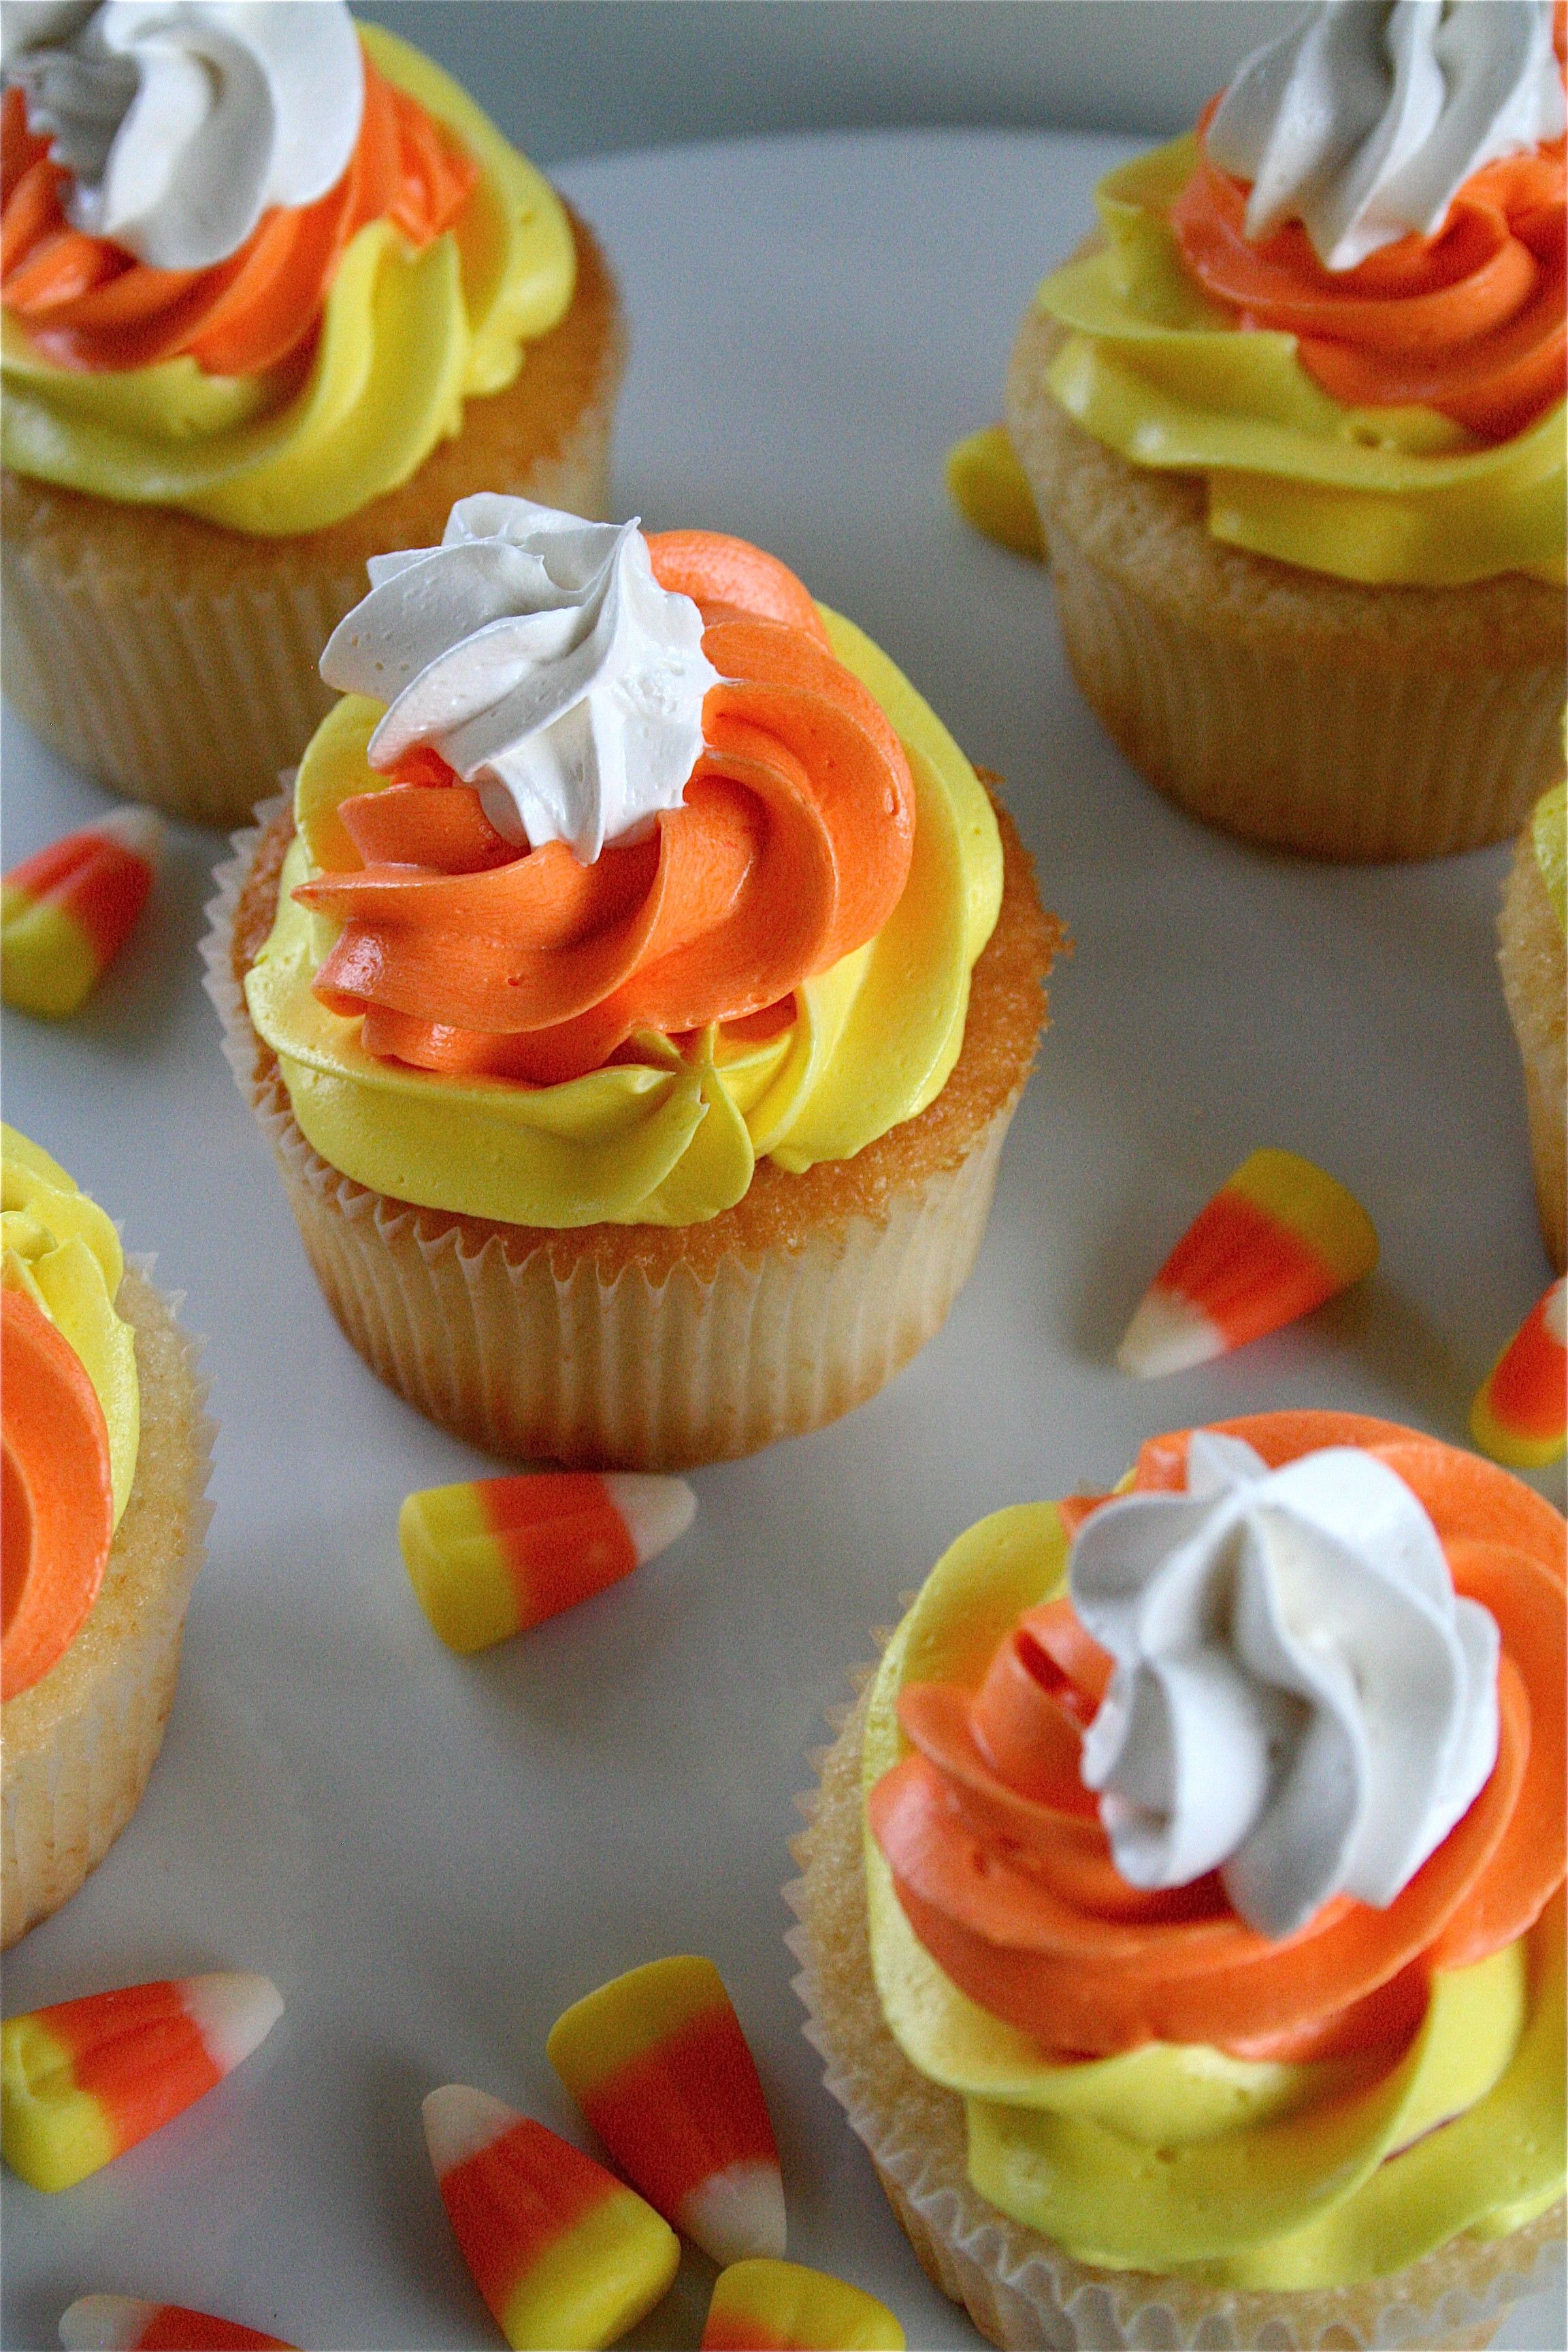 Easy Halloween Cupcakes  28 Cute Halloween Cupcakes Easy Recipes for Halloween